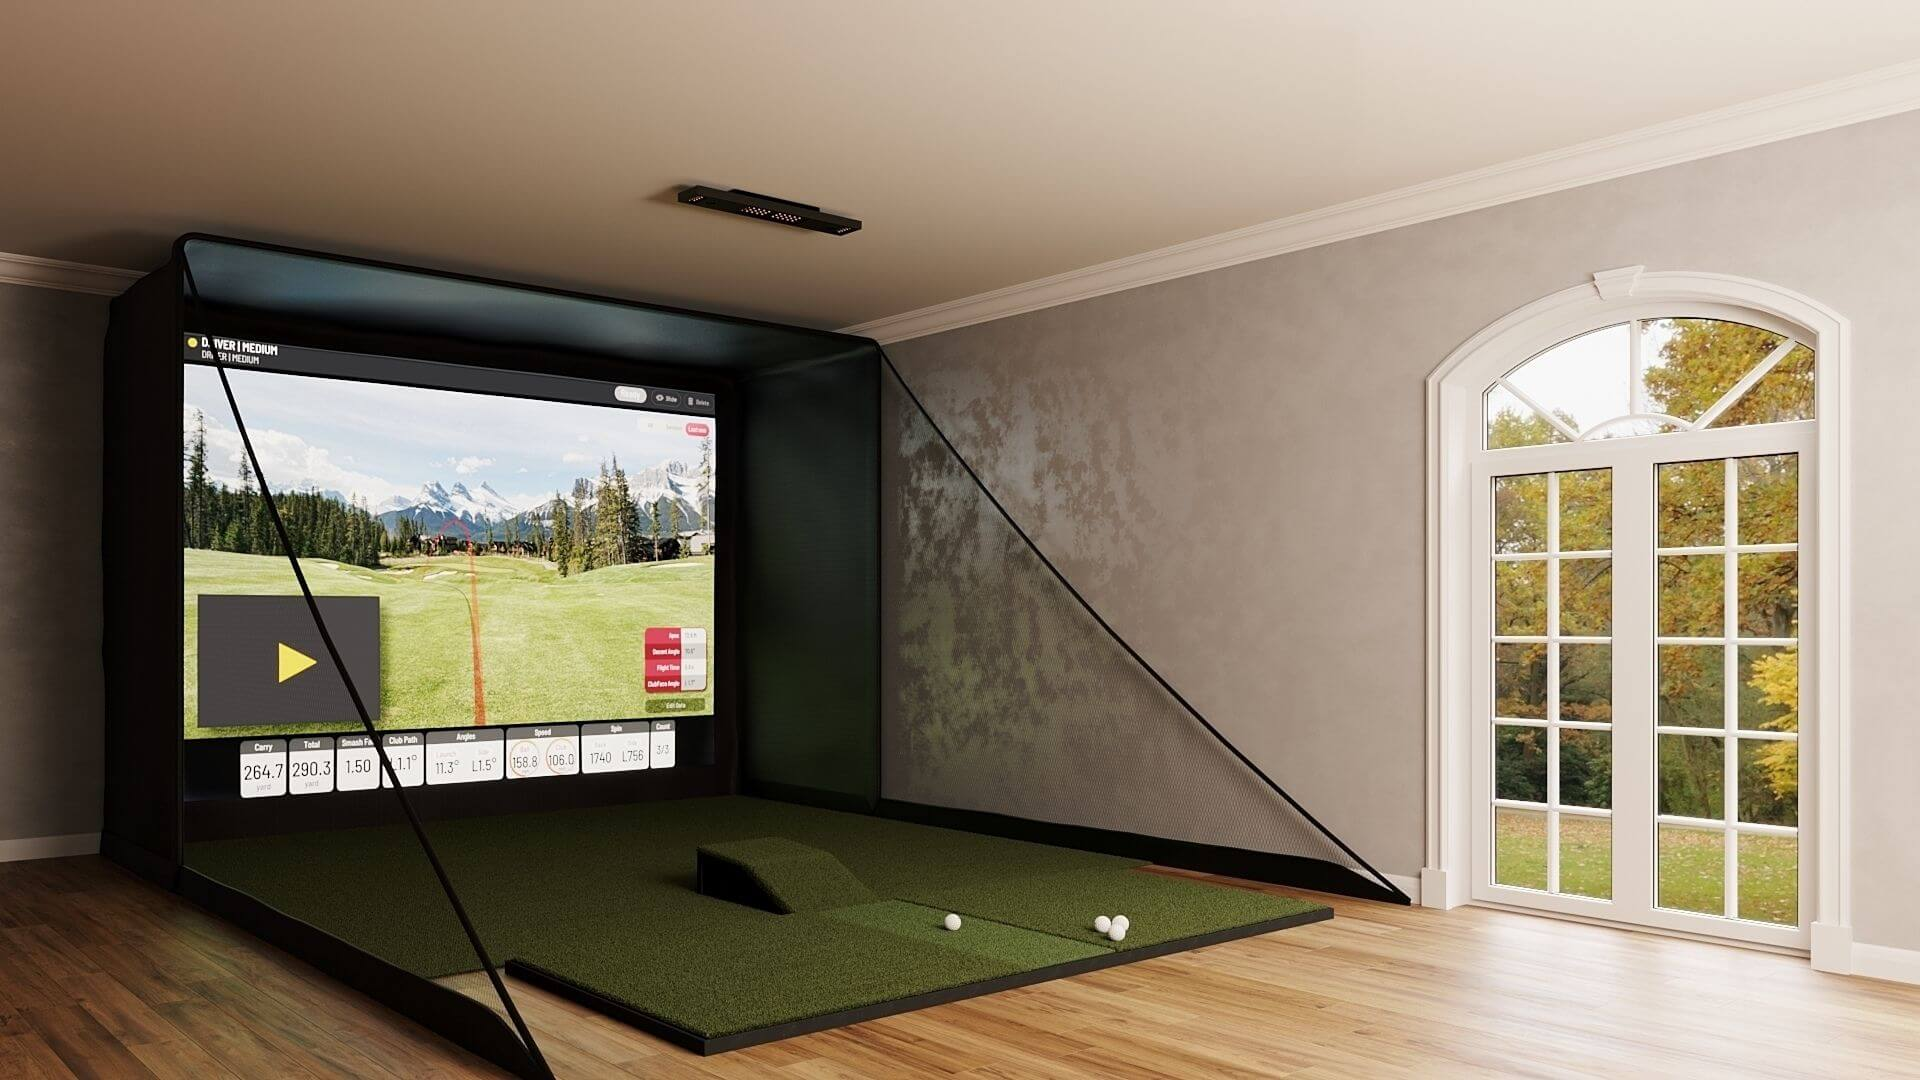 side view of the SIG12 EYE XO Golf simulator package with screen, landing pad, and hitting mat